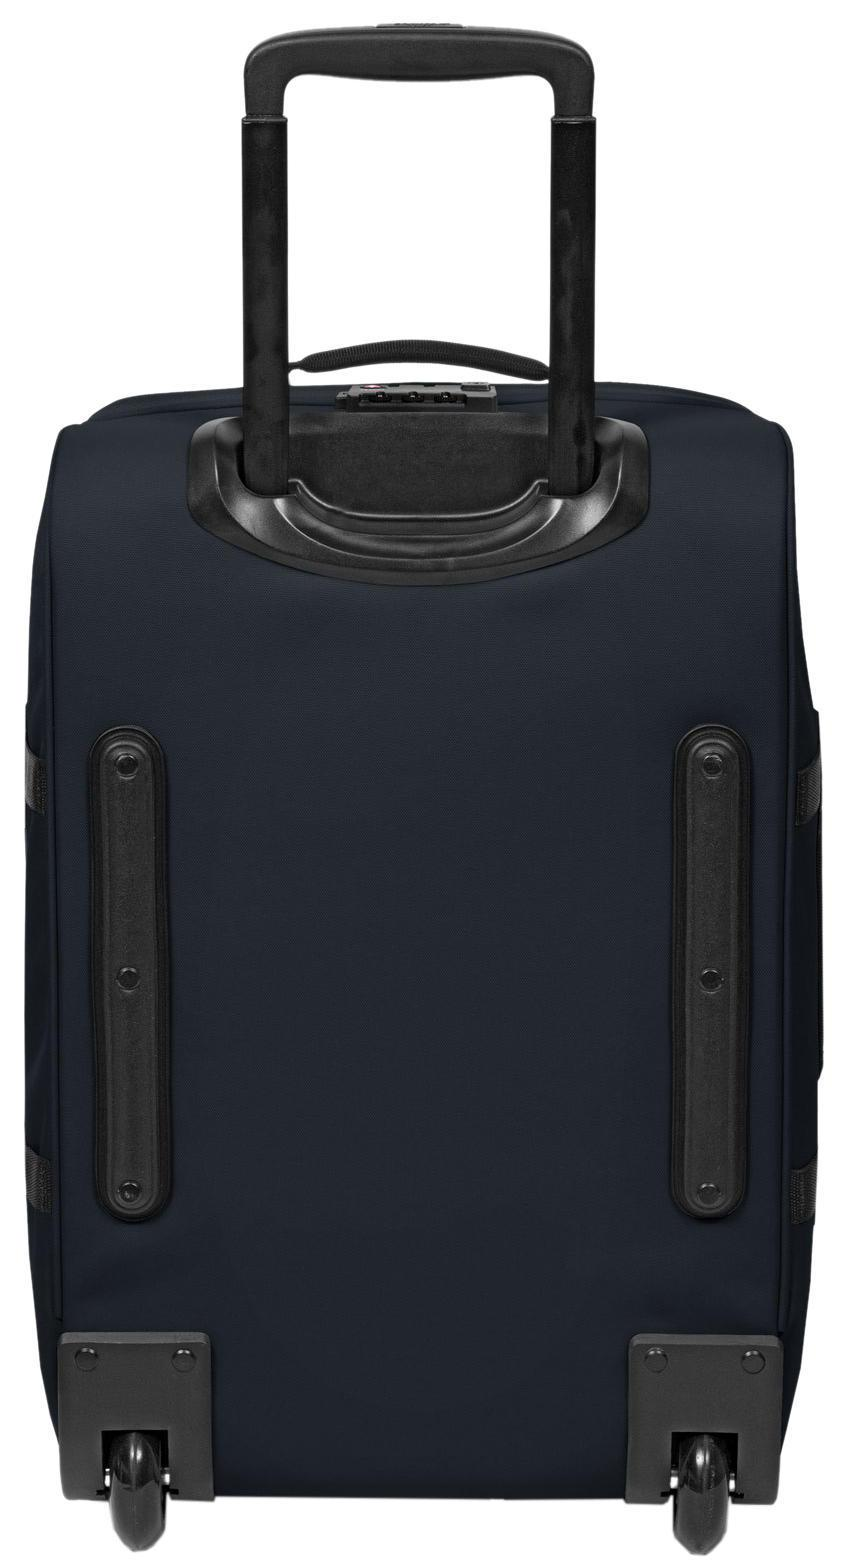 Eastpak Tranverz S Combination Lock Cabin Luggage Case Navy